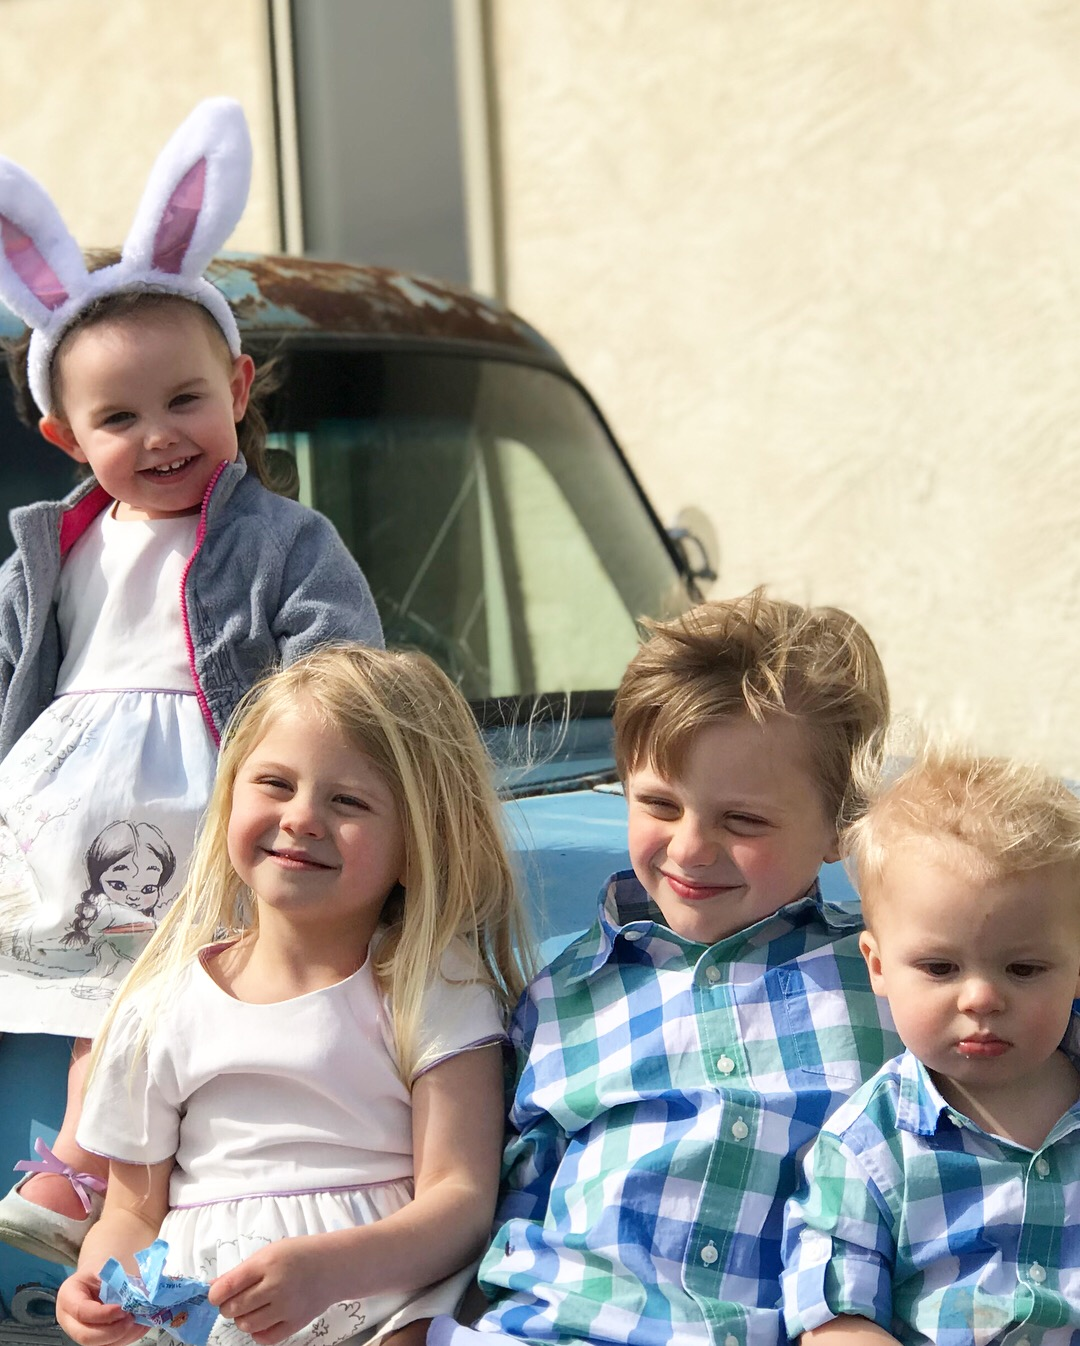 Easter babies!